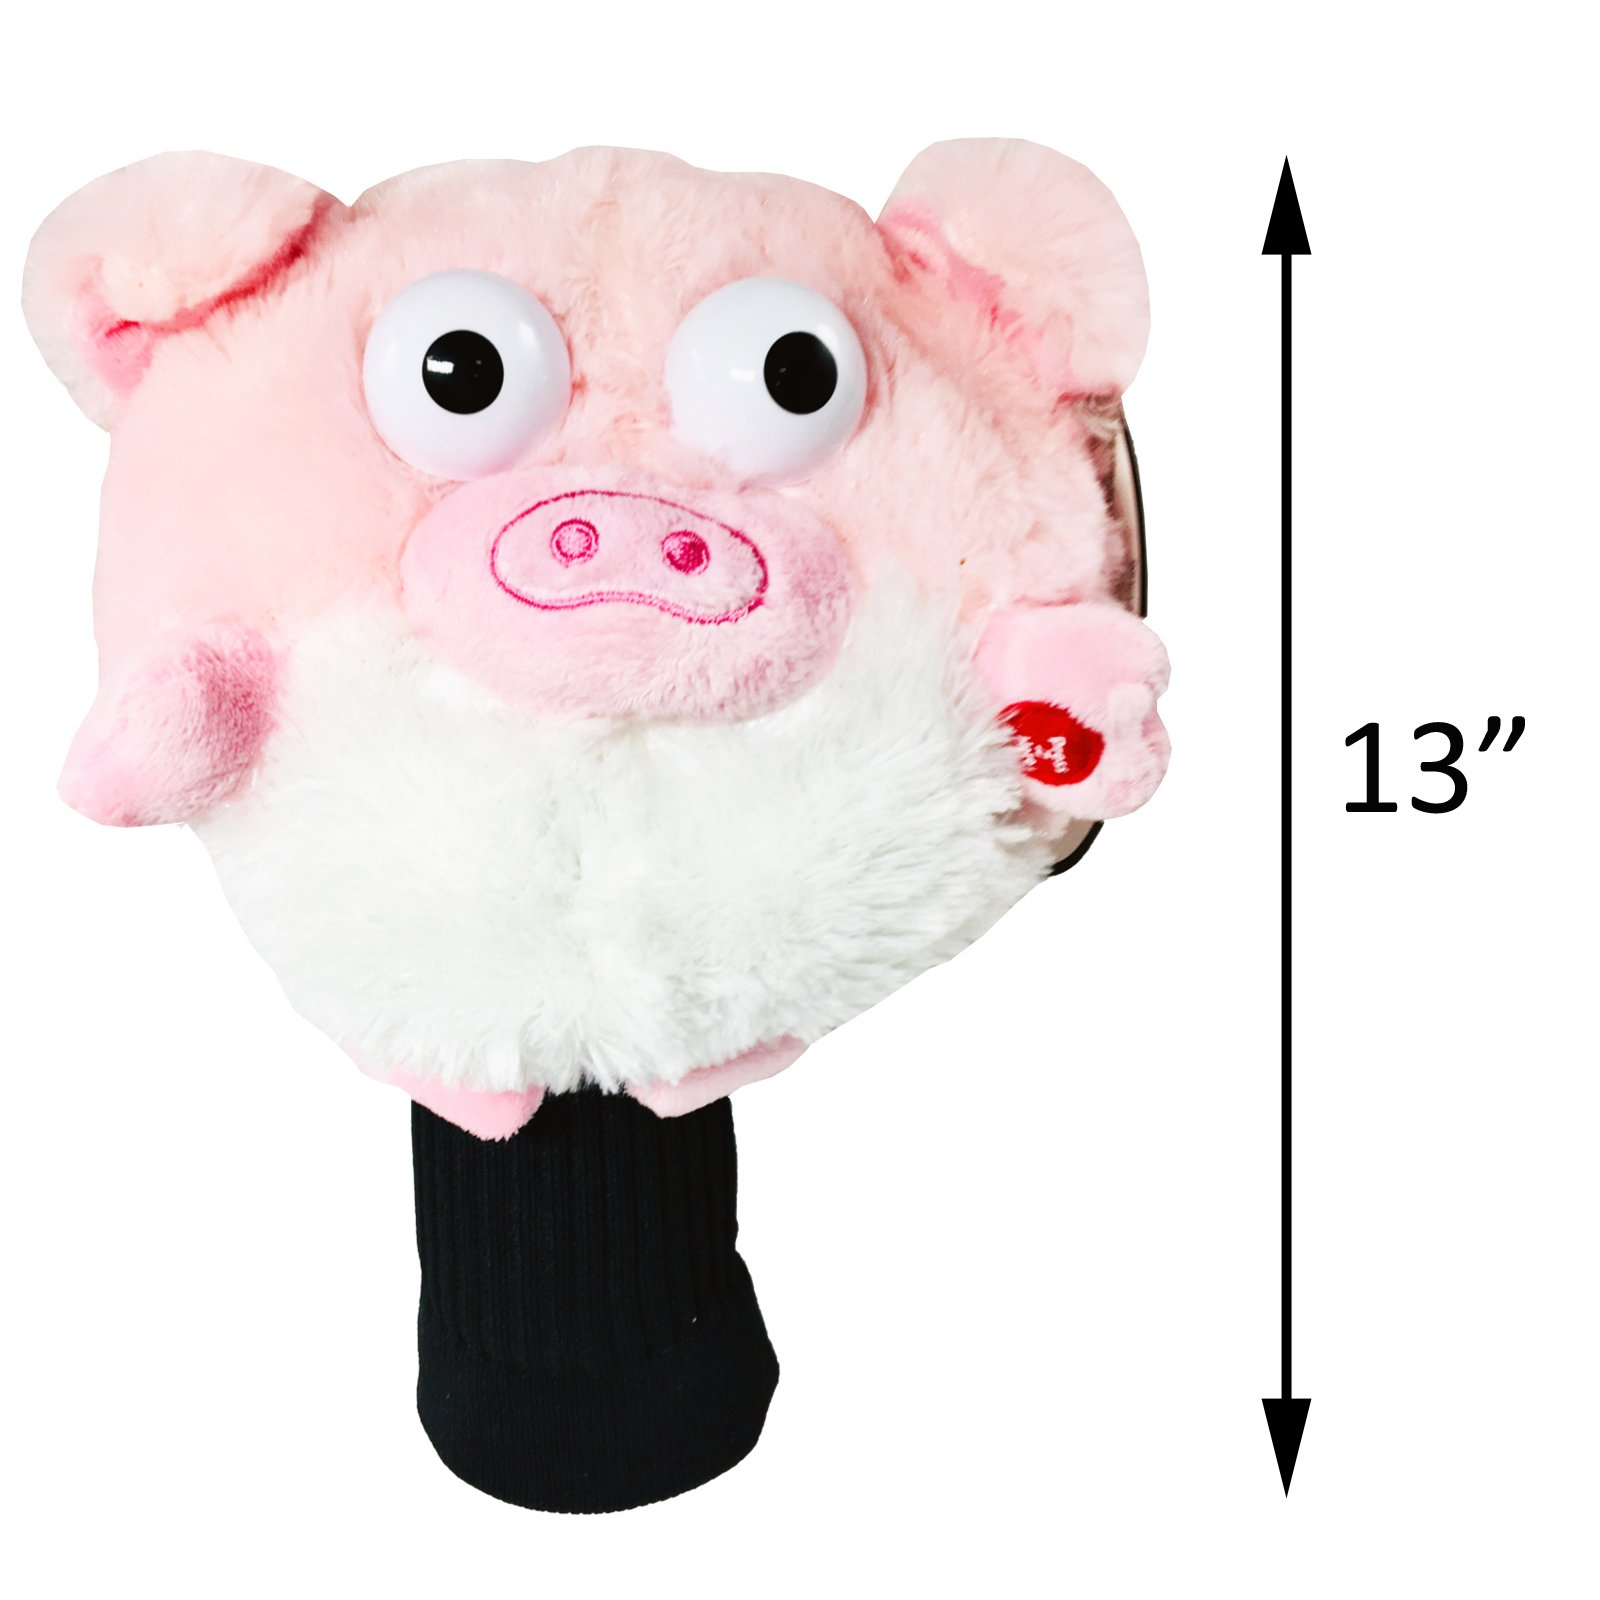 Golf Pals Goofballs Pig Head Cover Spinning Eyes Sounds